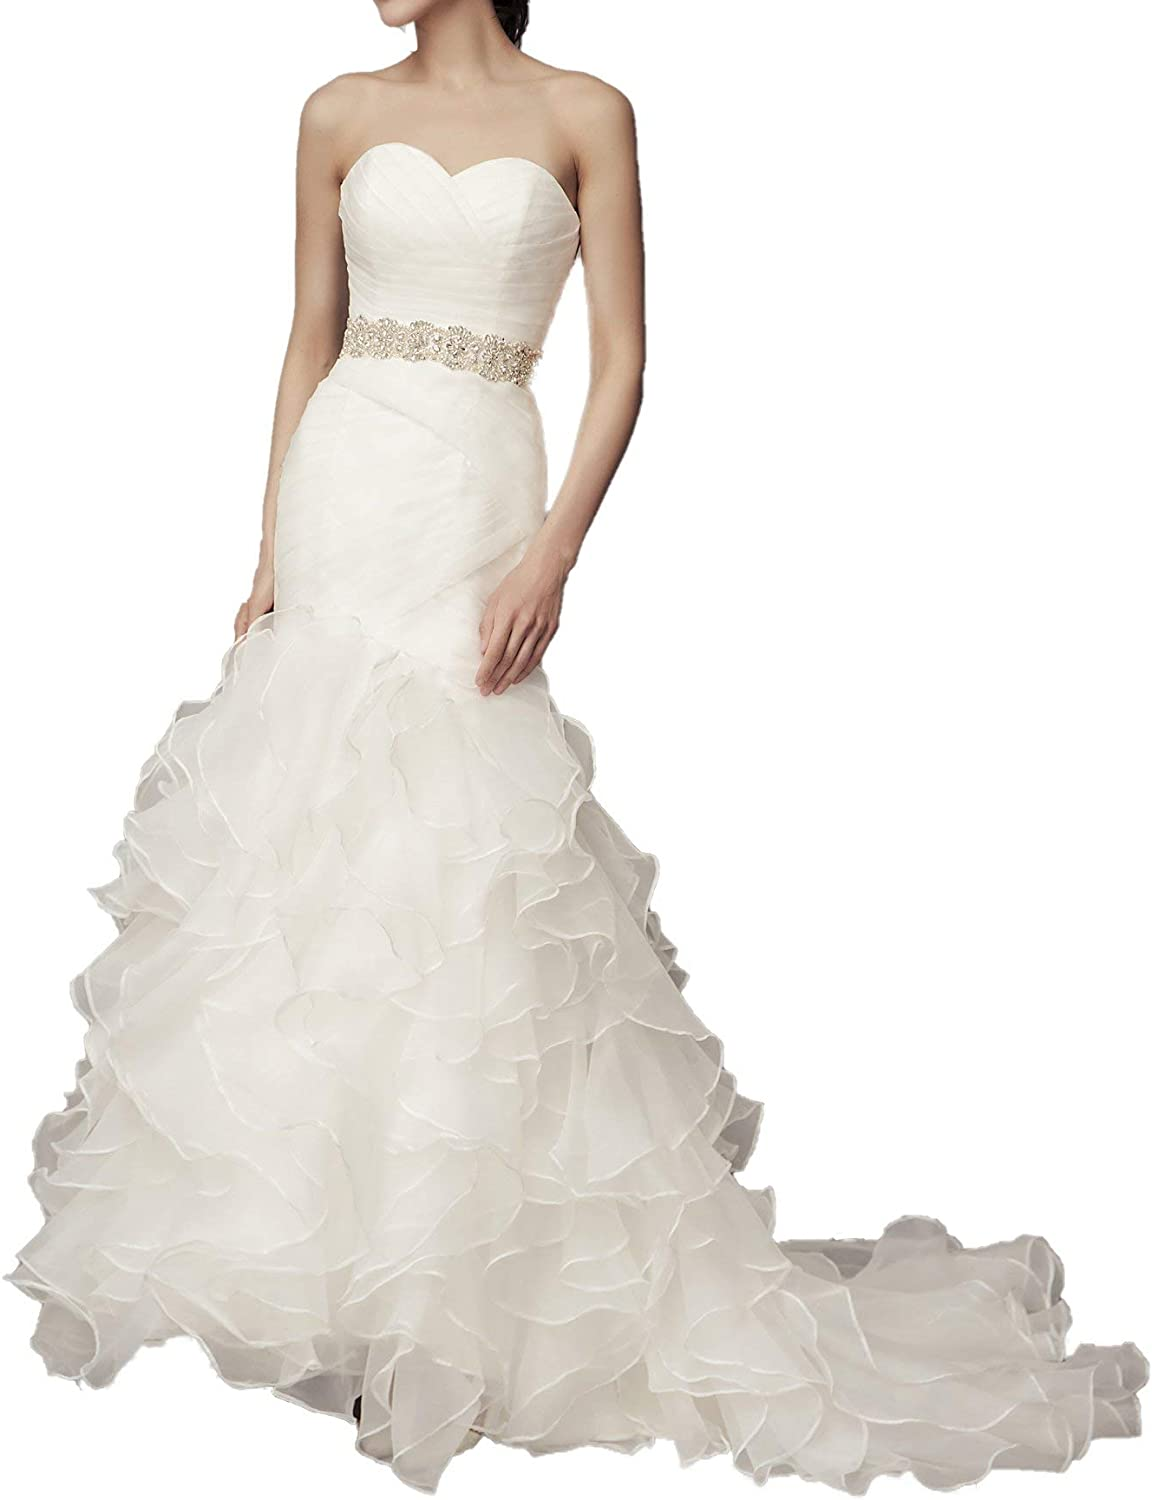 ICCELY Women's Mermaid Sweetheart Sleeveless Wedding Dresses for Bride